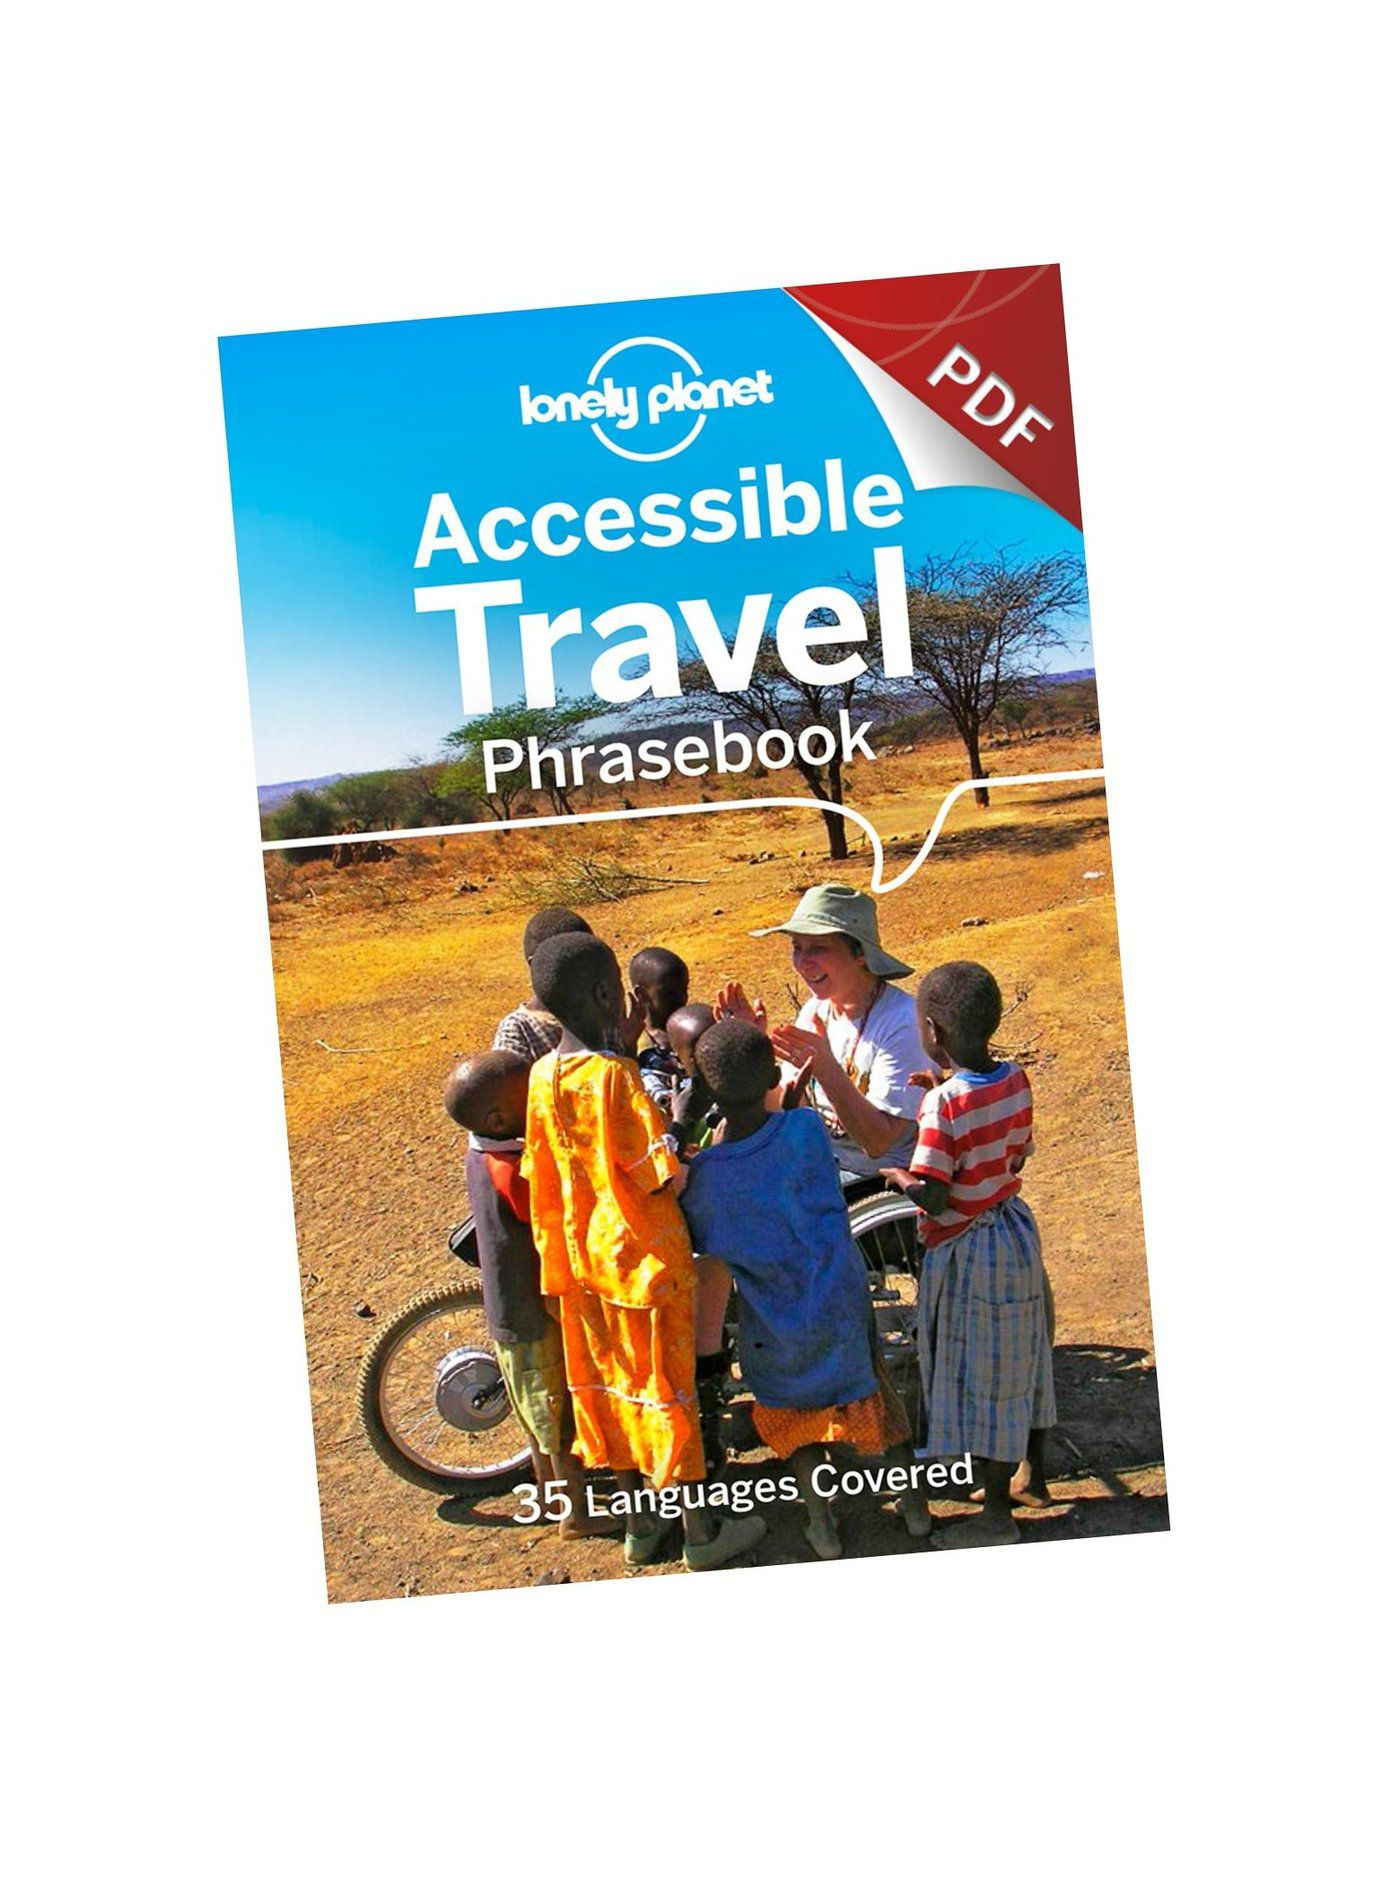 New Accessible Travel Phrasebook Available